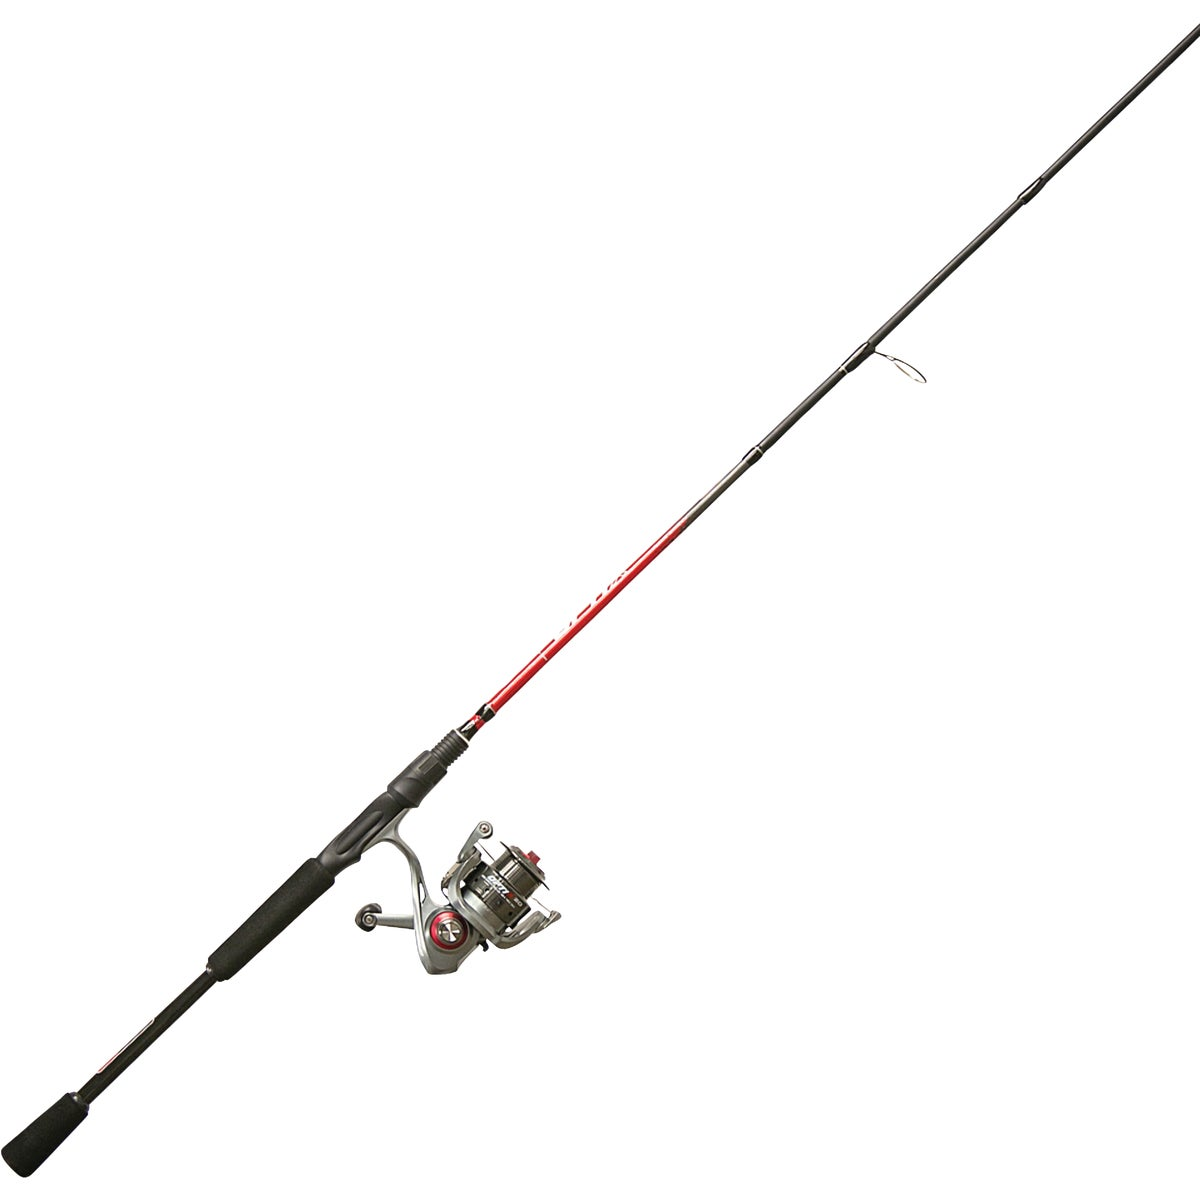 "6'6"" SPINNING ROD & REEL"